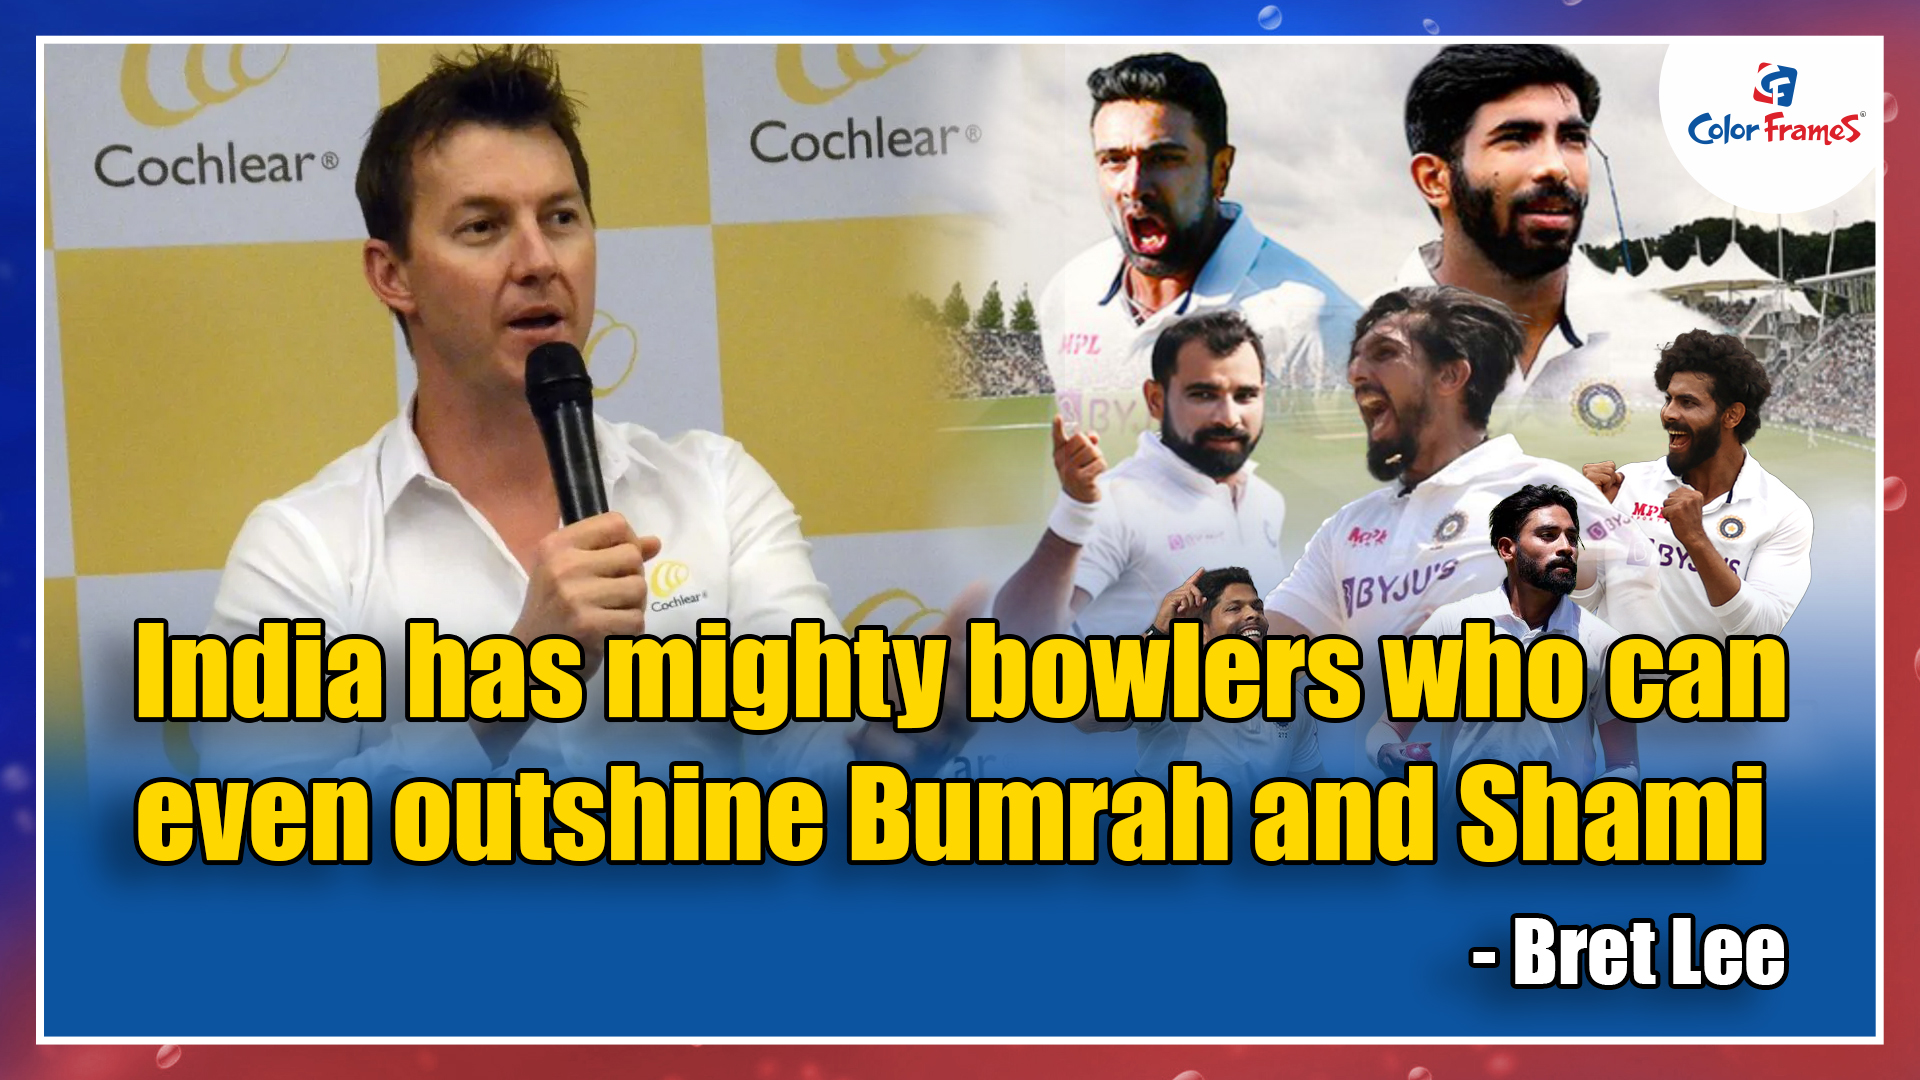 India has mighty bowlers who can even outshine Bumrah and Shami - Bret Lee